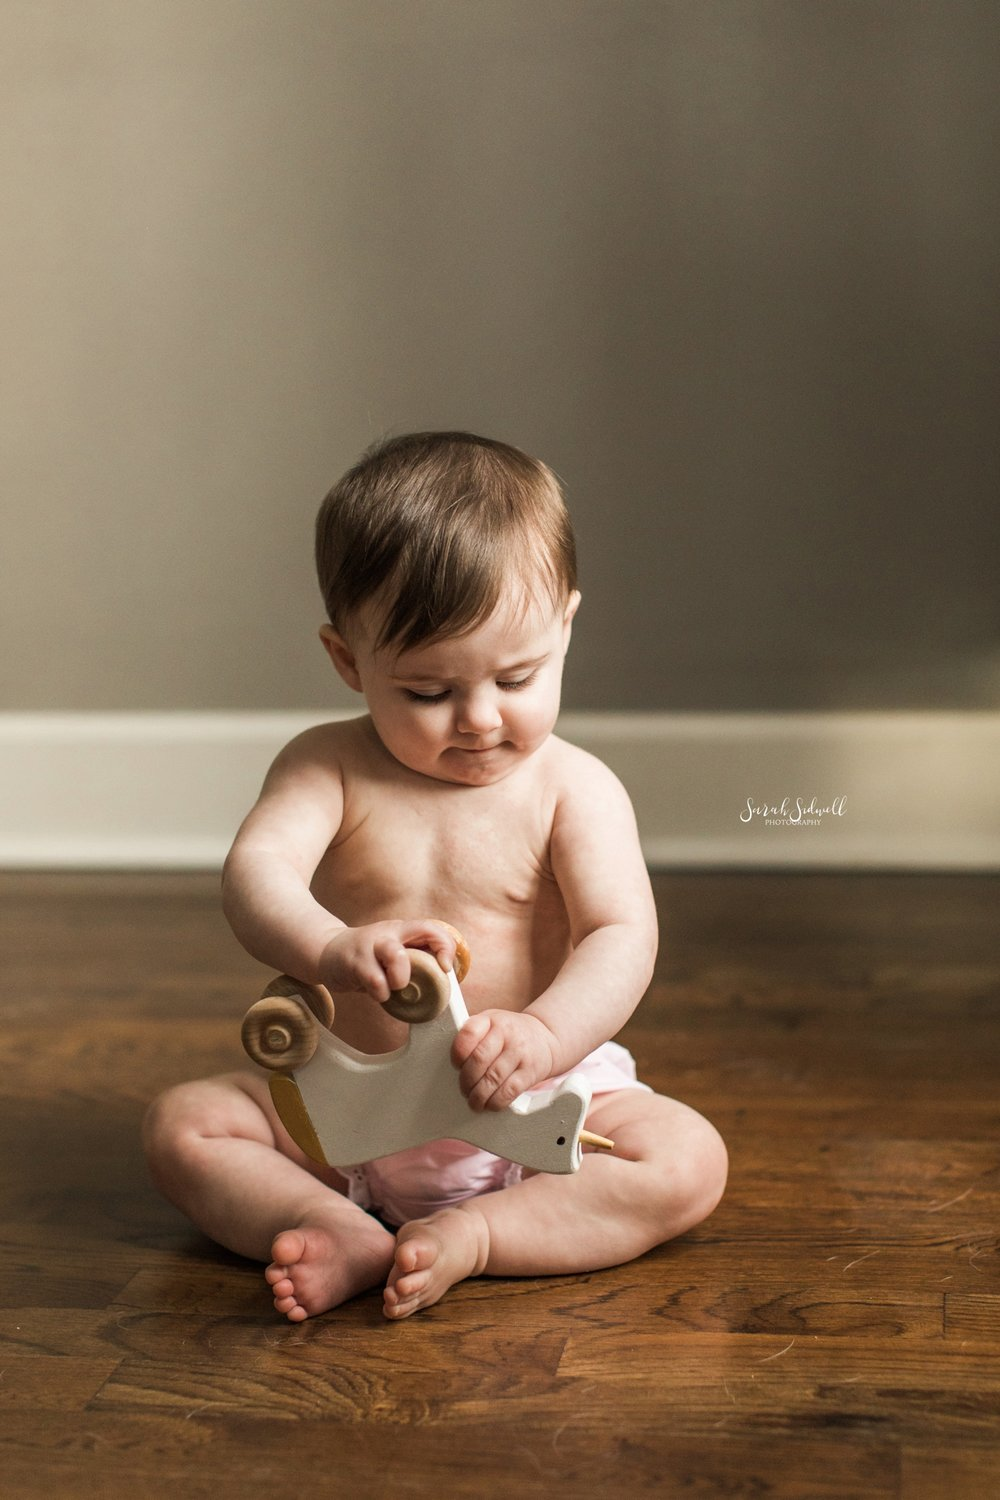 A baby sits up while playing.